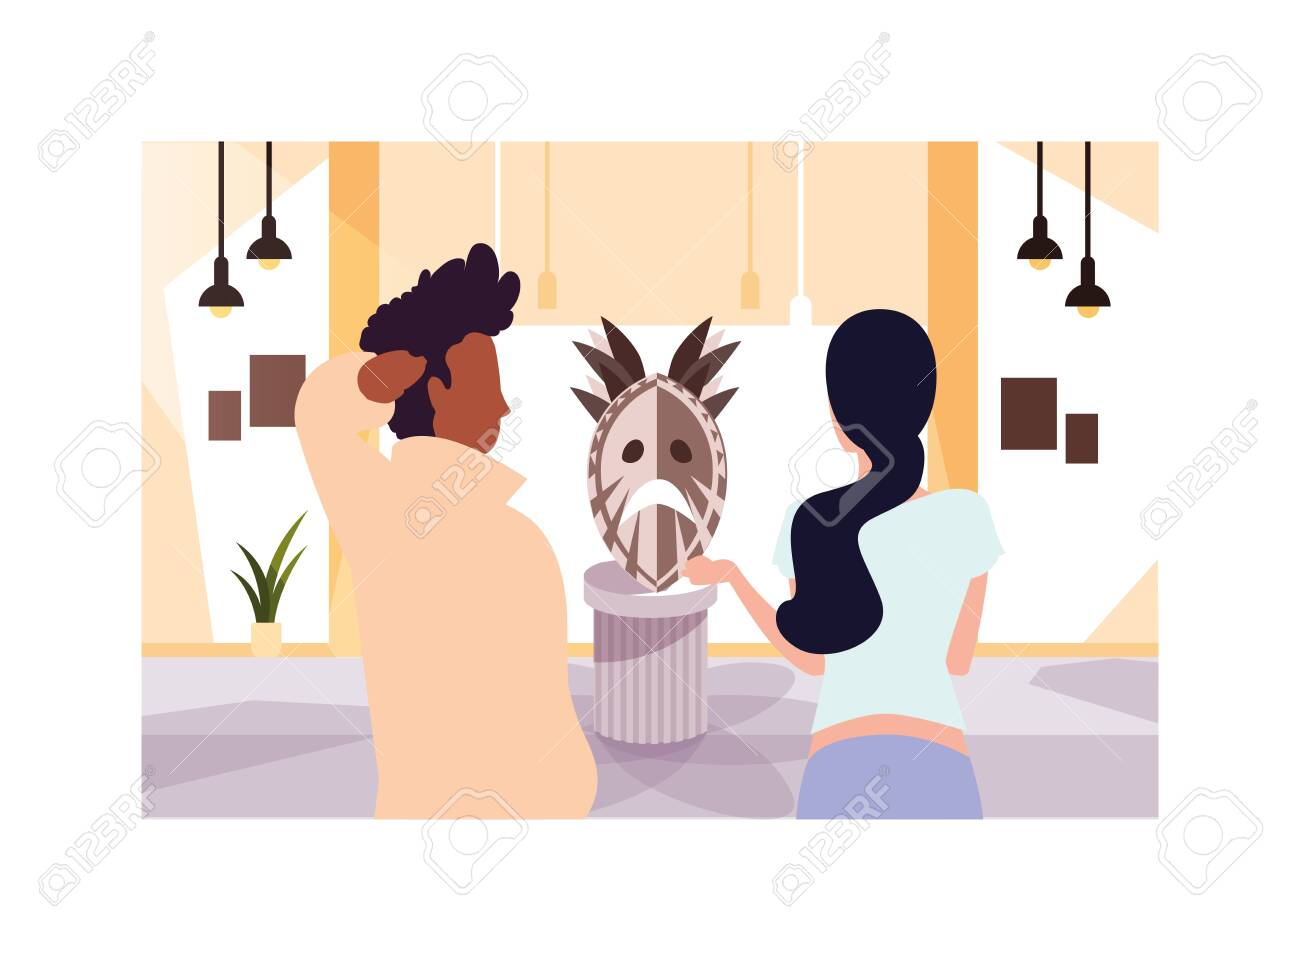 couple of people in contemporary art gallery, exhibition visitors viewing modern abstract paintings vector illustration design - 154577864